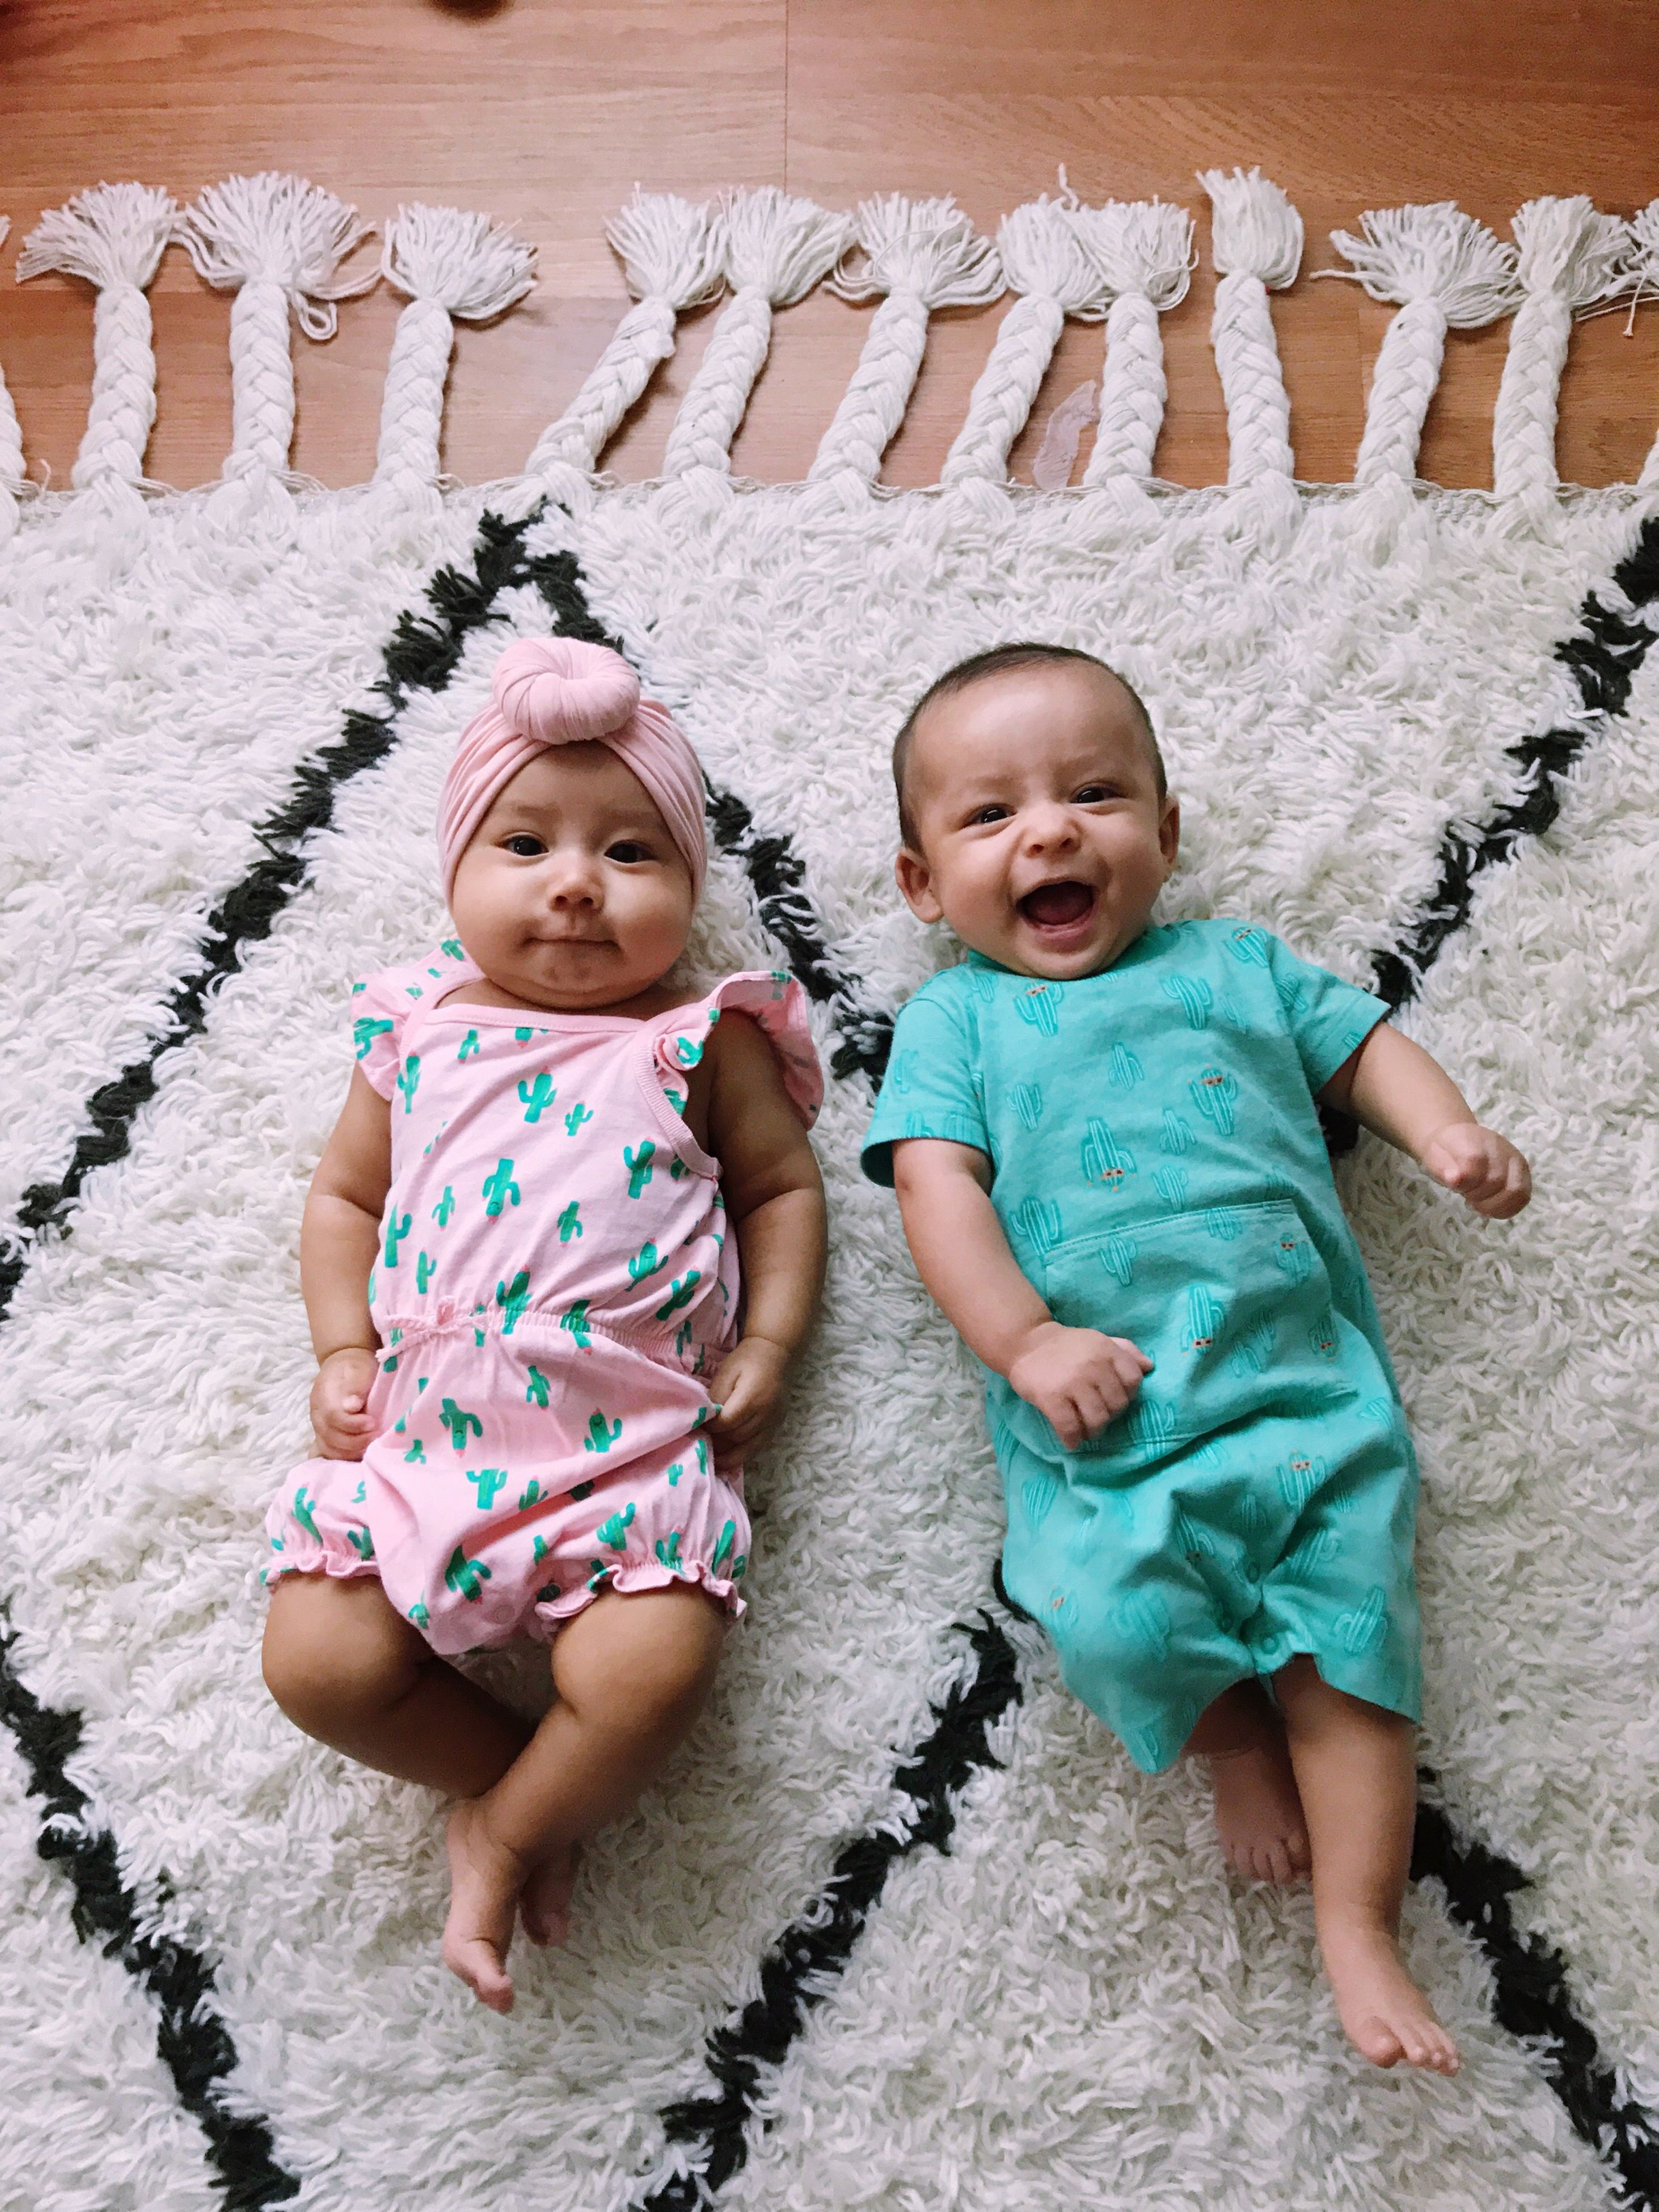 baby, full length, baby clothing, innocence, high angle view, females, babyhood, lying down, bonding, babies only, people, day, happiness, childhood, outdoors, young women, smiling, togetherness, adult